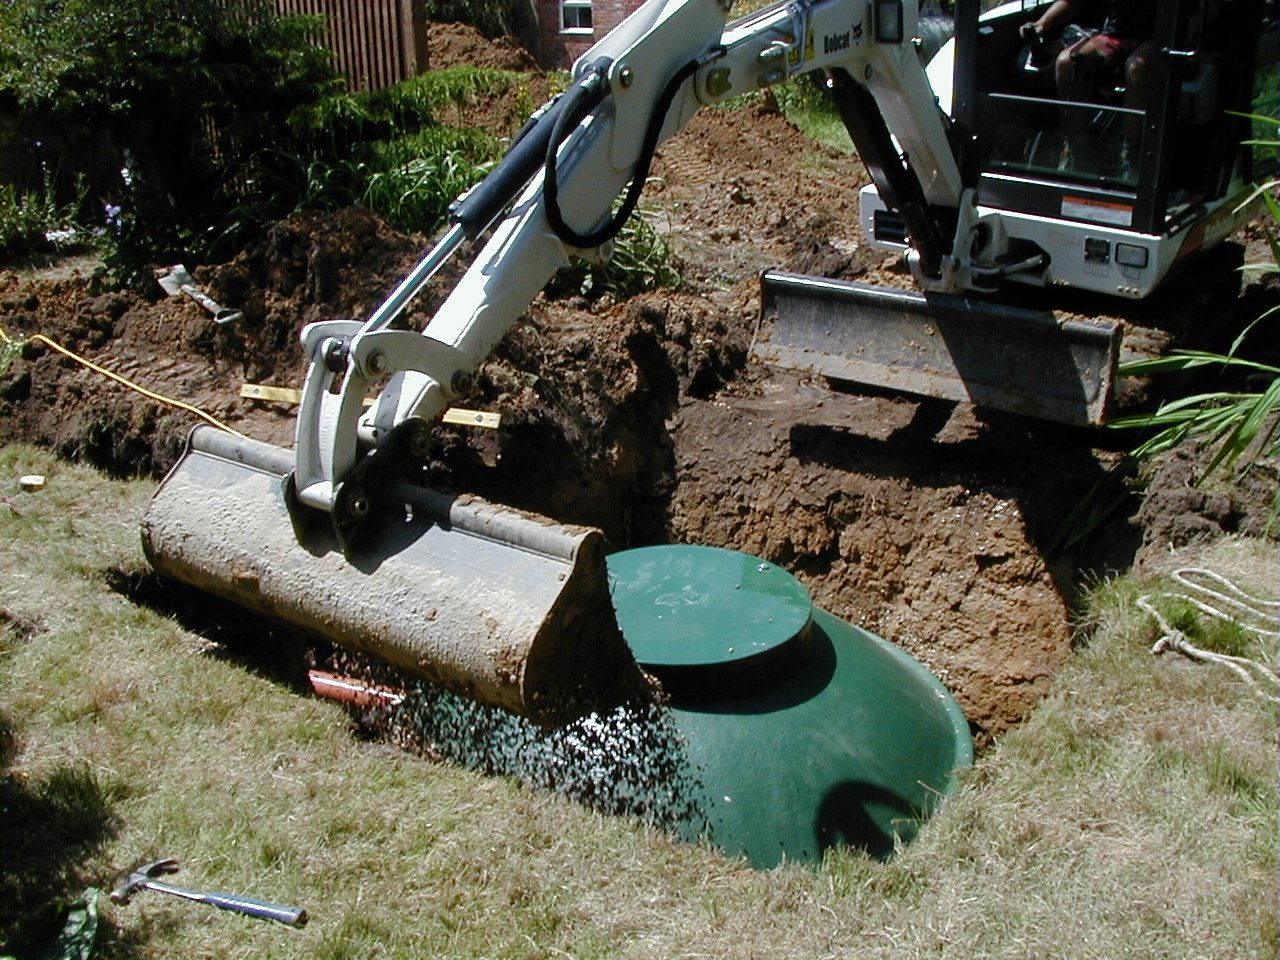 Image-showing-the-compact-installation-of-a-below-ground-WPL-Diamond-small-package-wastewater-sewage-treatment-plant-for-off-mains-drainage-at-a-domestic-application-home.